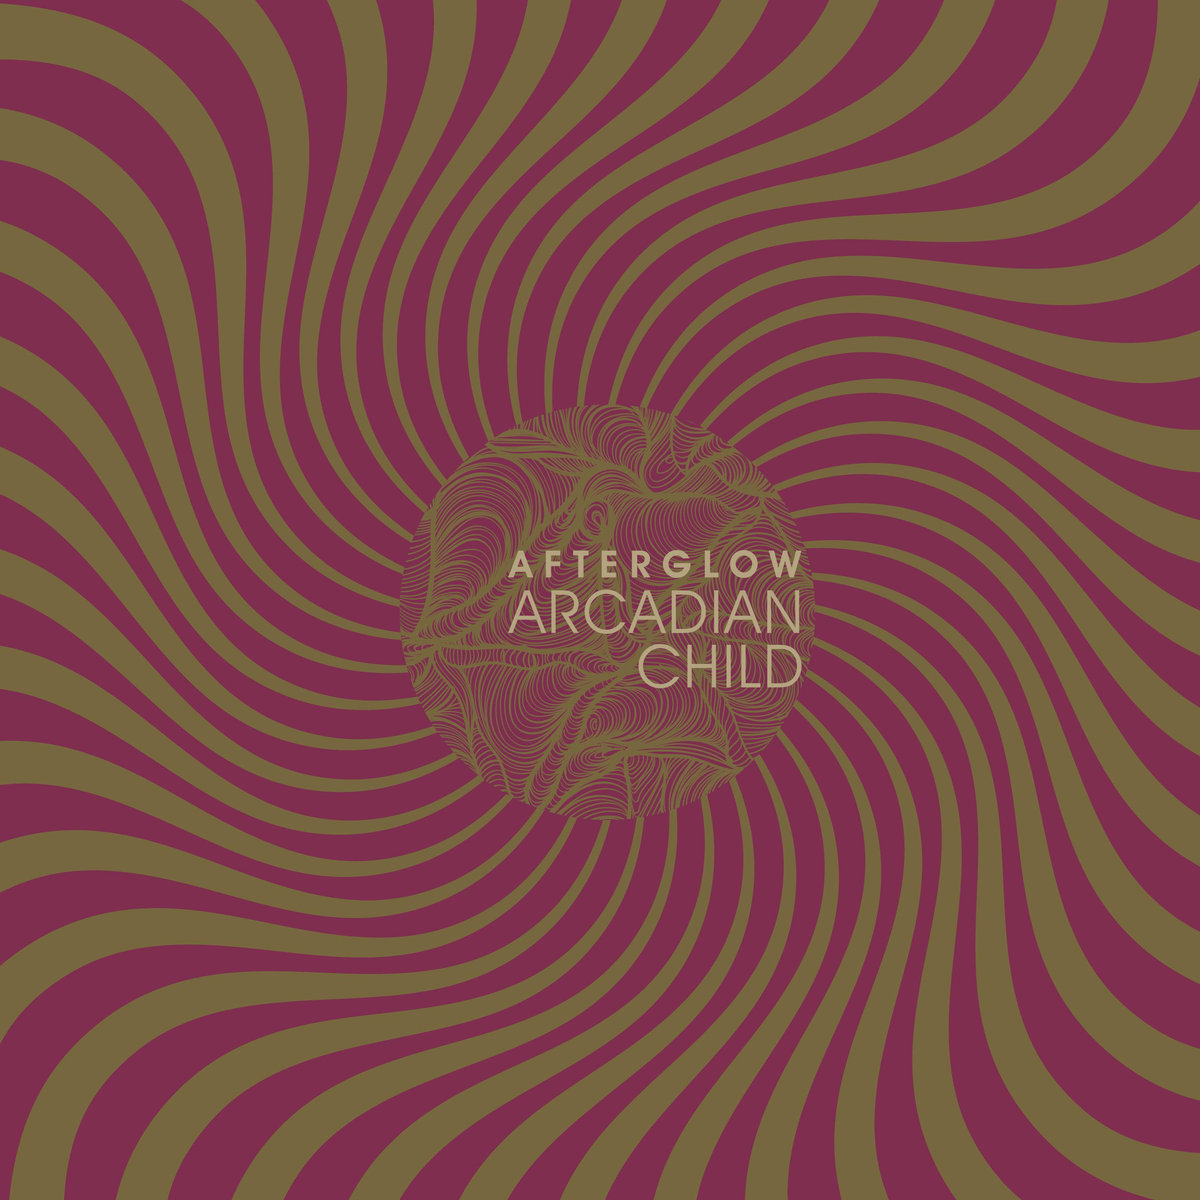 Afterglow_Album Cover